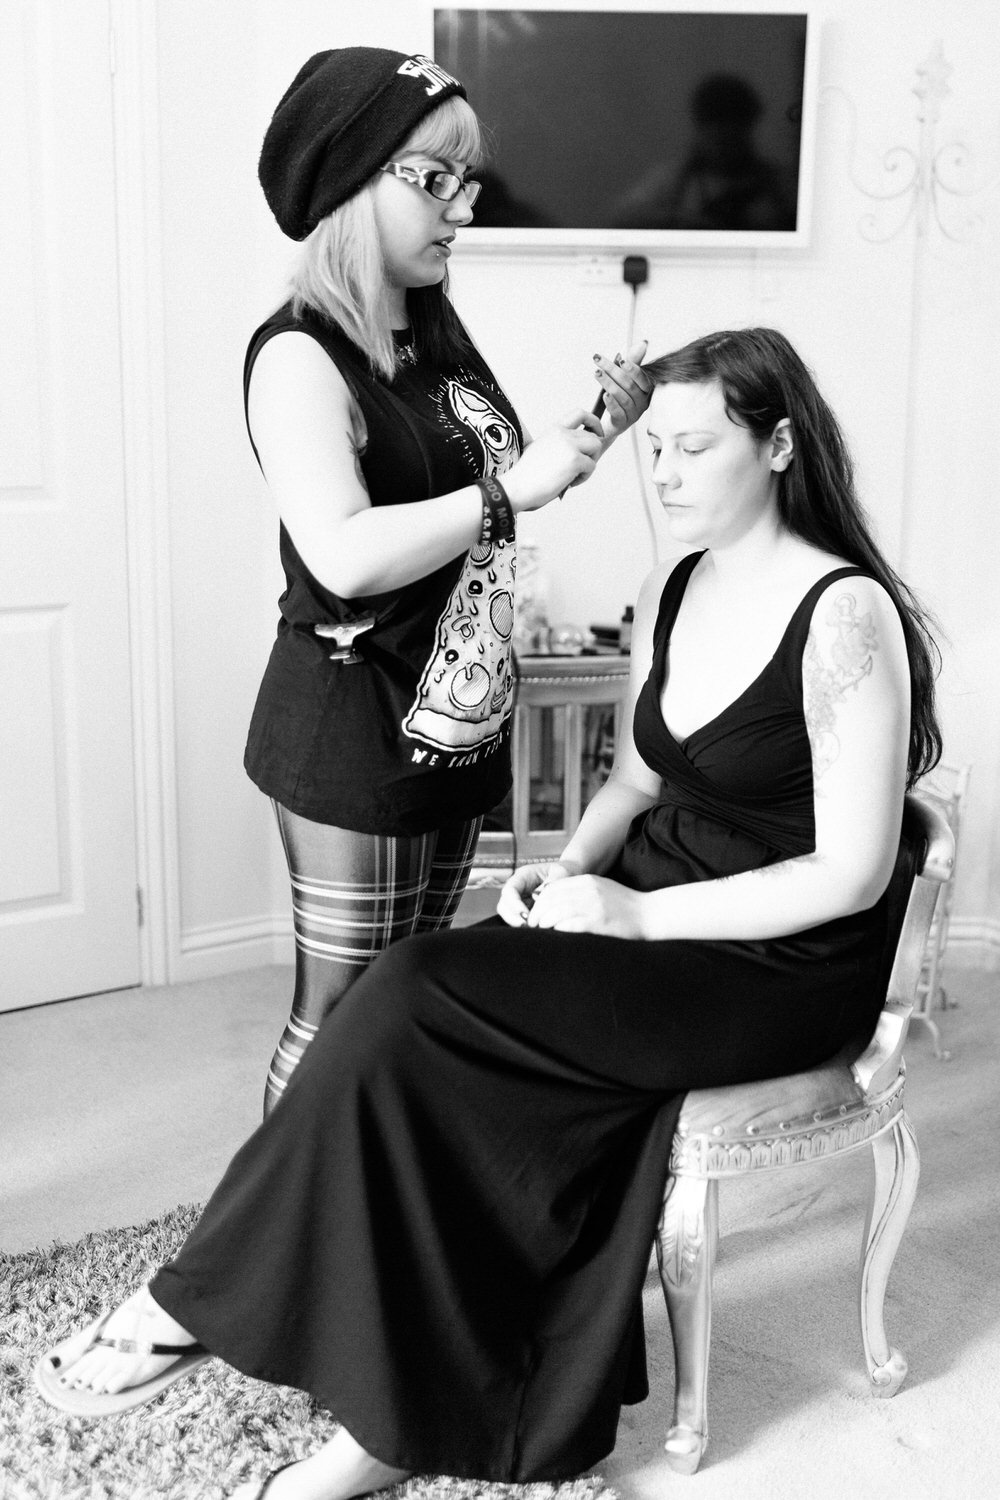 Special-Day-Photography-Manor-By-The-Lake-Cheltenham-Manor-By-The-Lake-50s-Wedding-The-bride-gets-ready-with-MUA.jpg